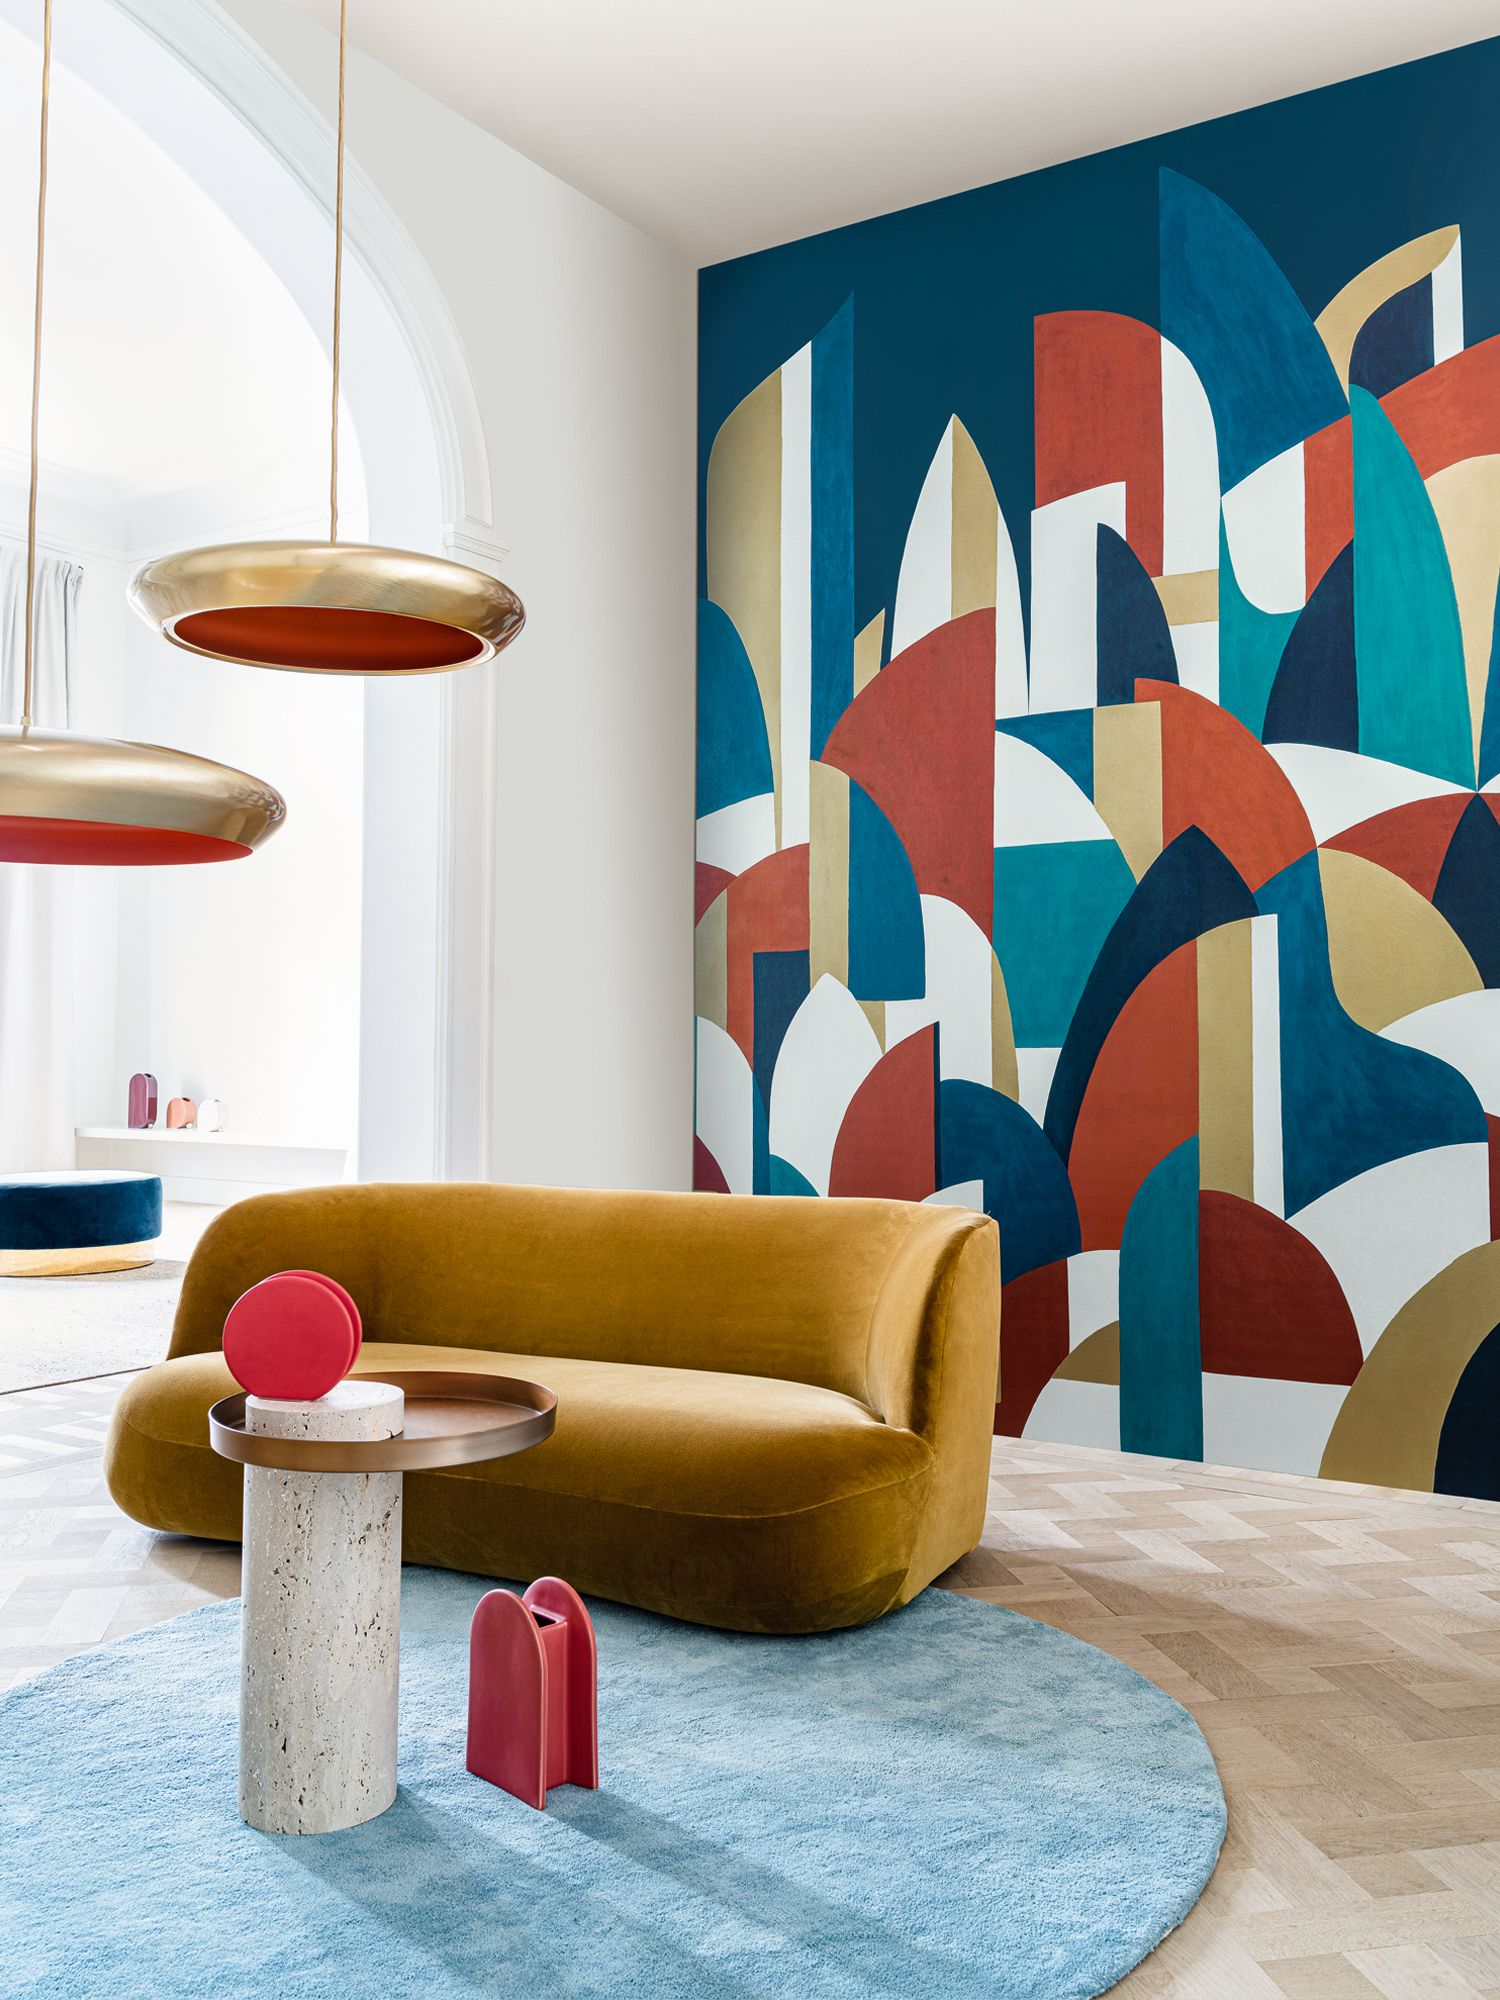 Casamance Autumn 2020 collection, from Cetec